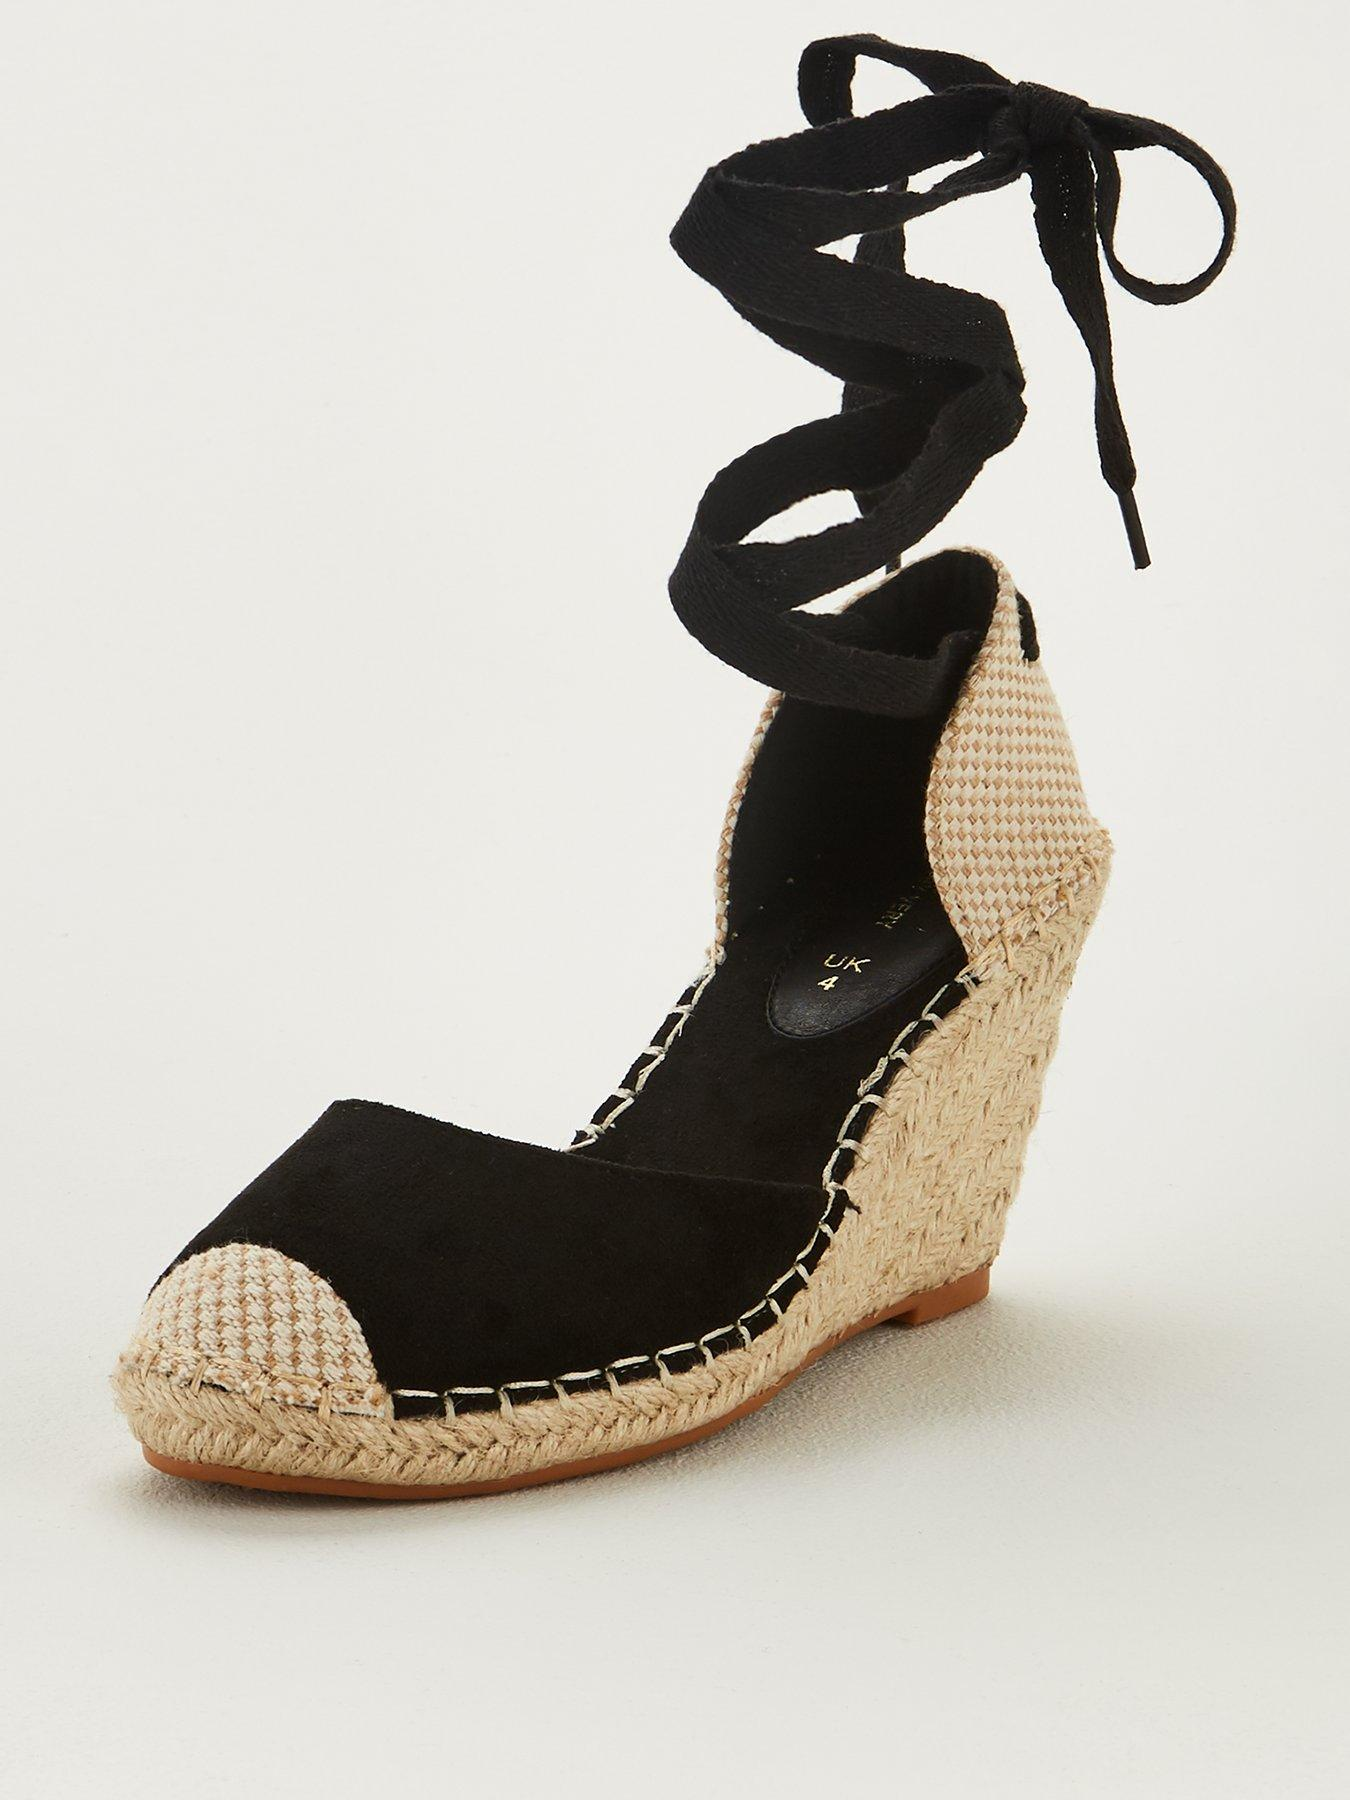 XBAS 10 womans shoes high heel shoes designer inspired